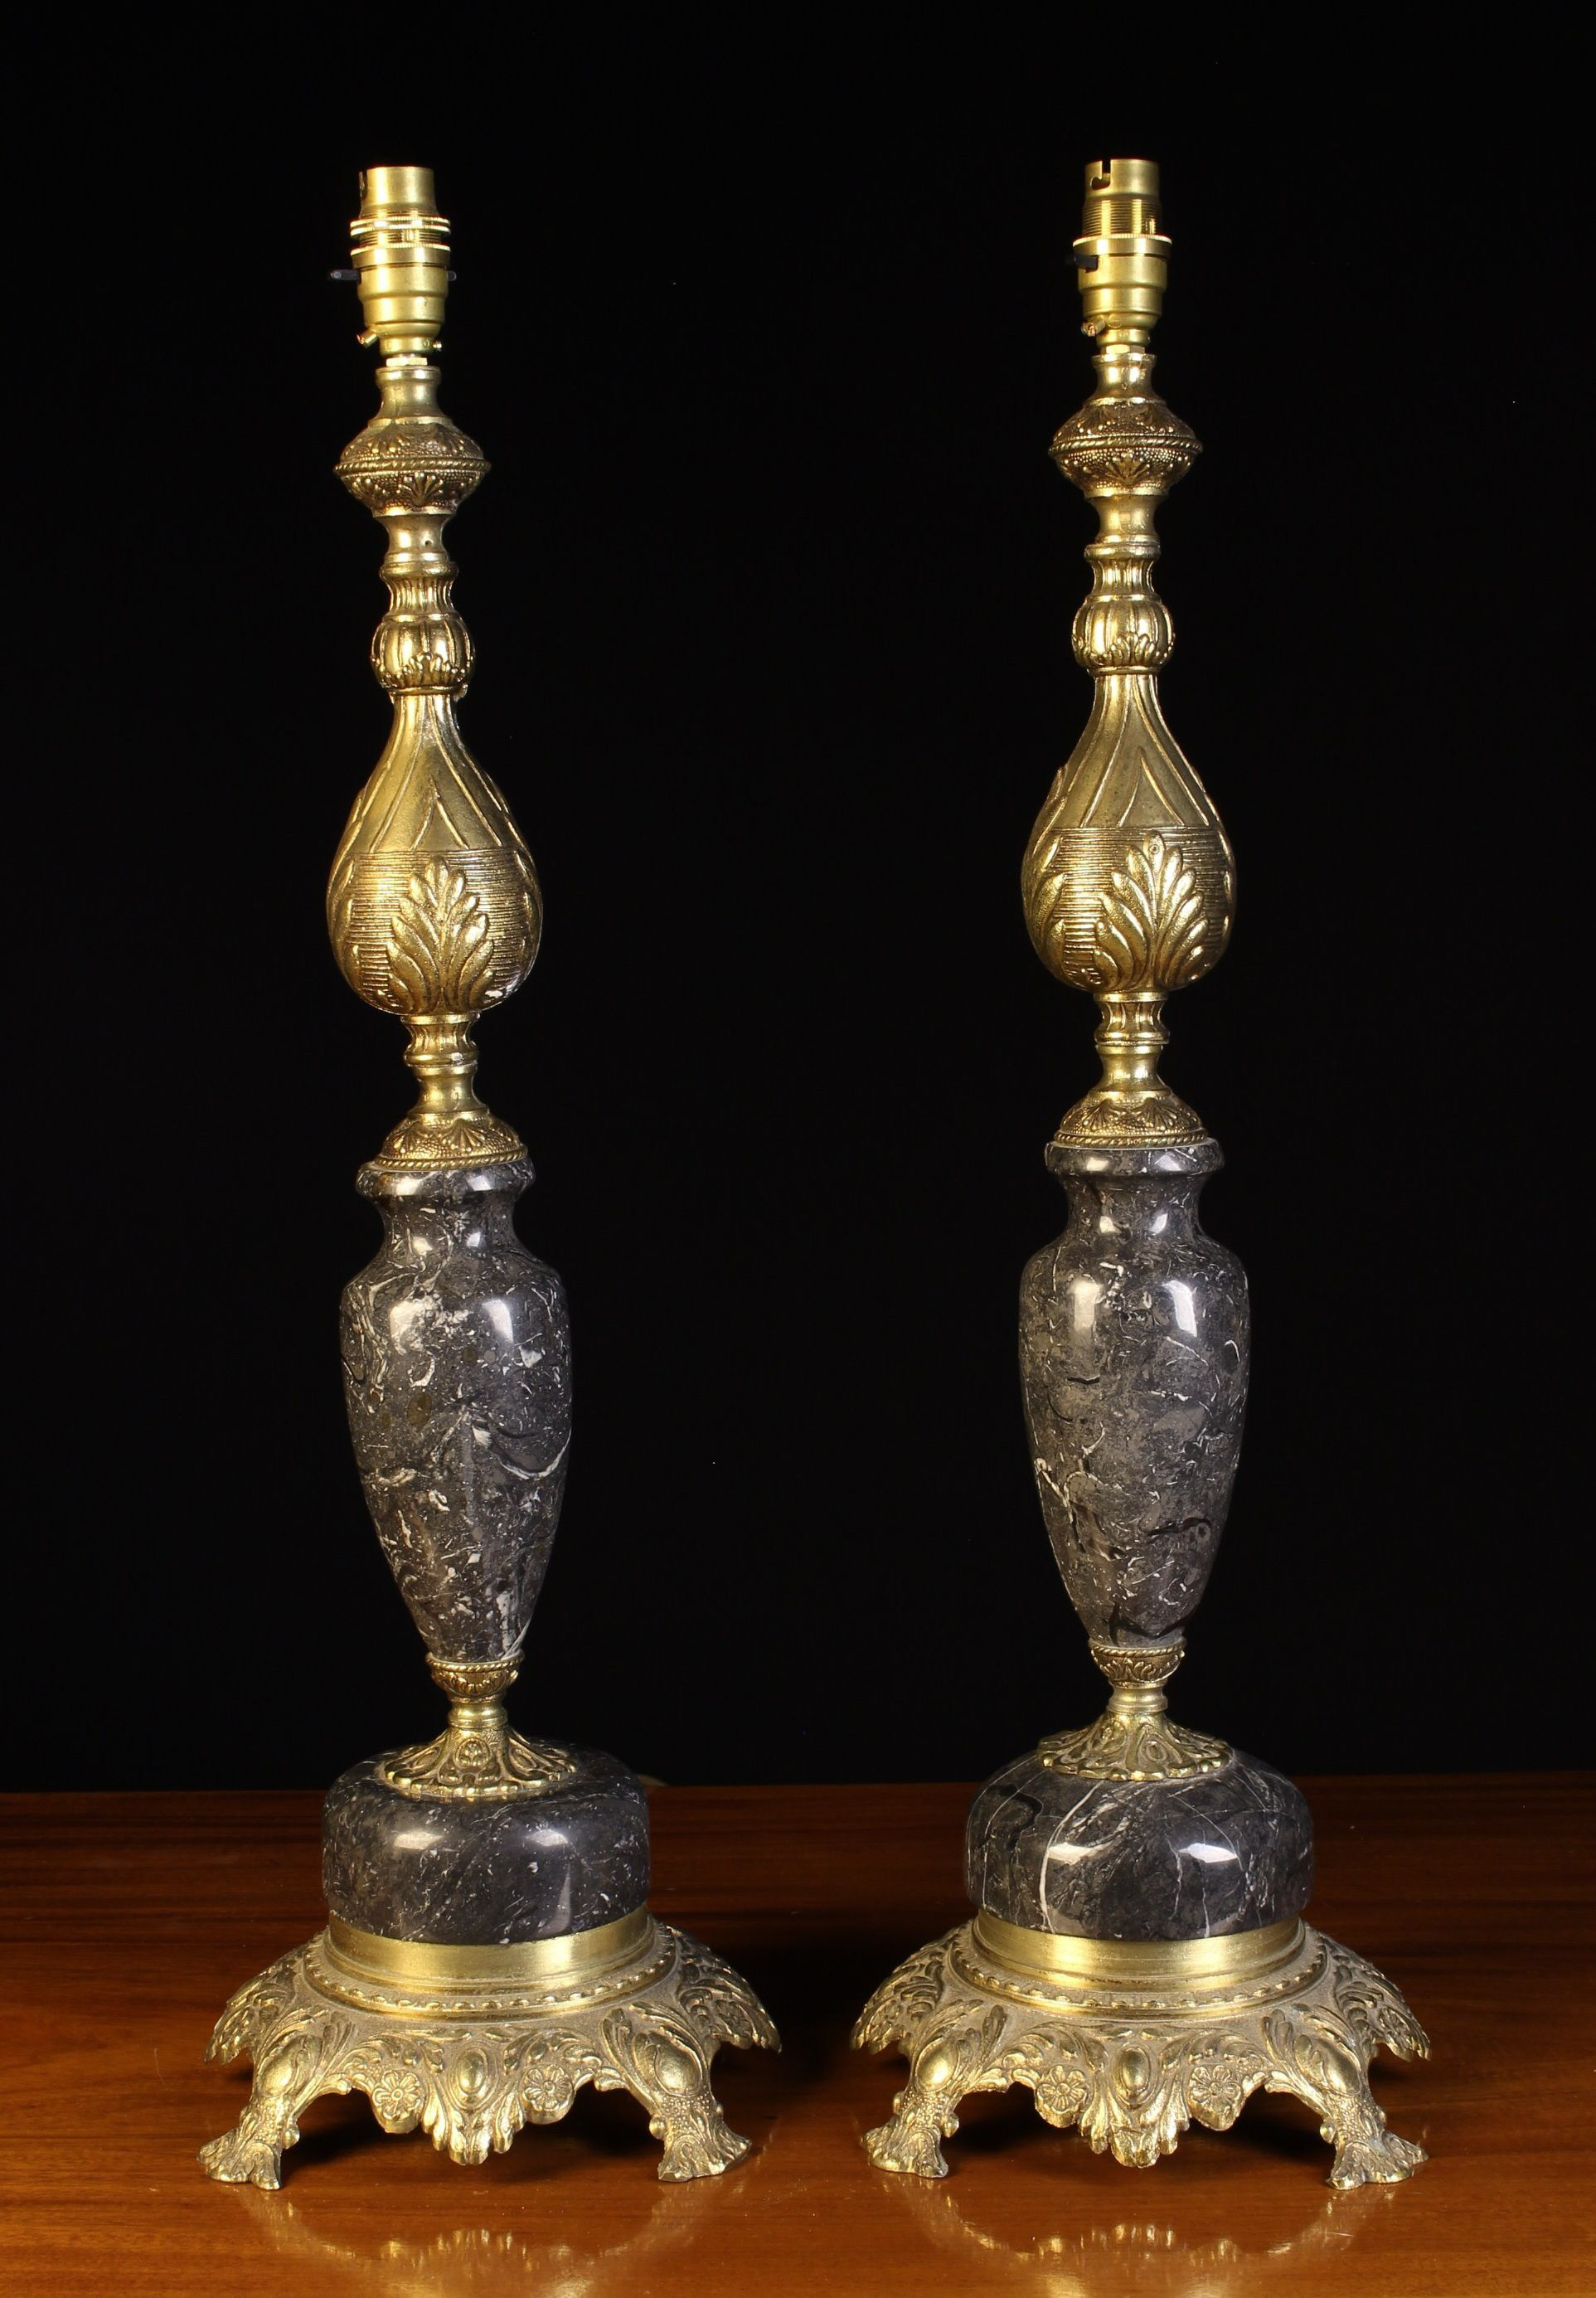 A Pair of Ornamental Cast Brass and 'Petit Granit' Marble Side Lamps with ornately cast stems - Image 2 of 2